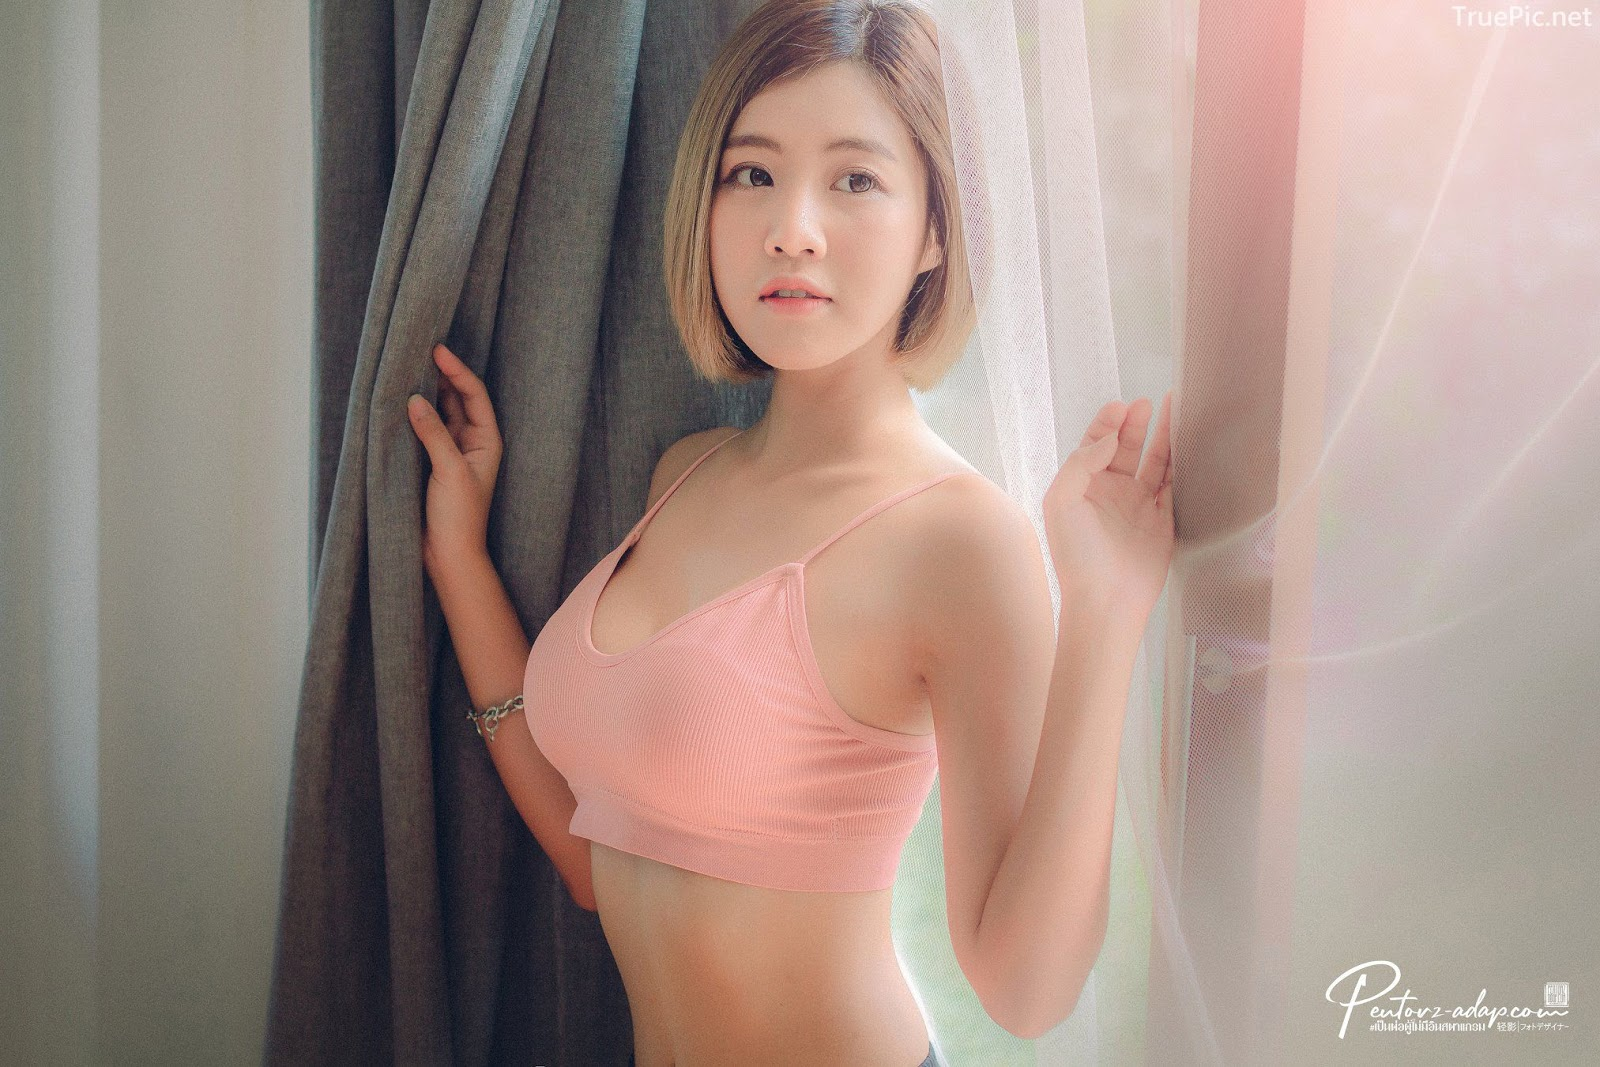 Thailand Cute Model - Fah Chatchaya Suthisuwan - Pink Lovely Fitness Sports Bra - TruePic.net - Picture 4